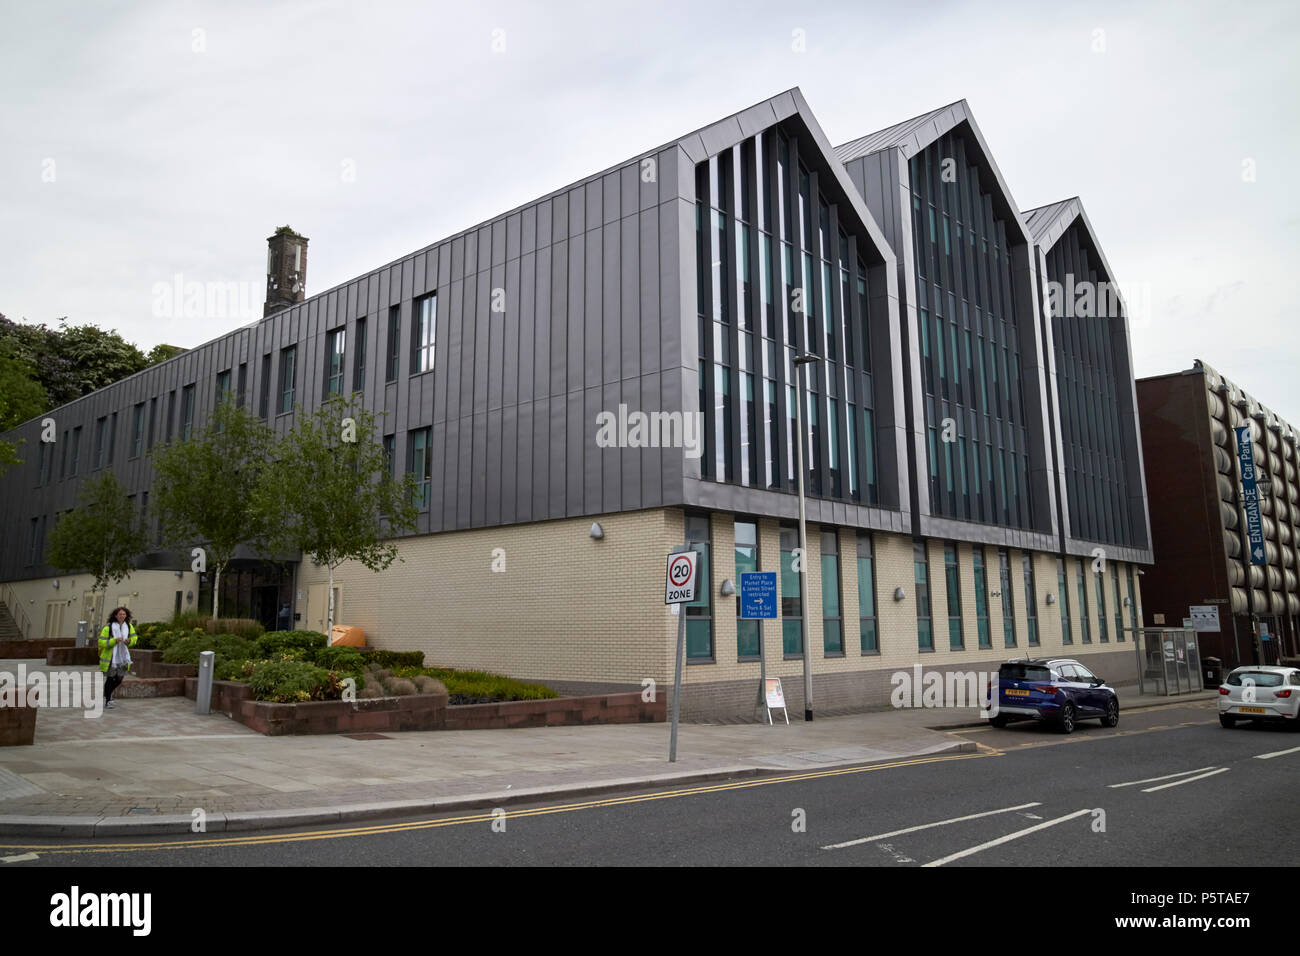 Albion Square office development home to copeland borough council sellafield ltd britains energy coast and nuclear development agency Whitehaven Cumbr - Stock Image